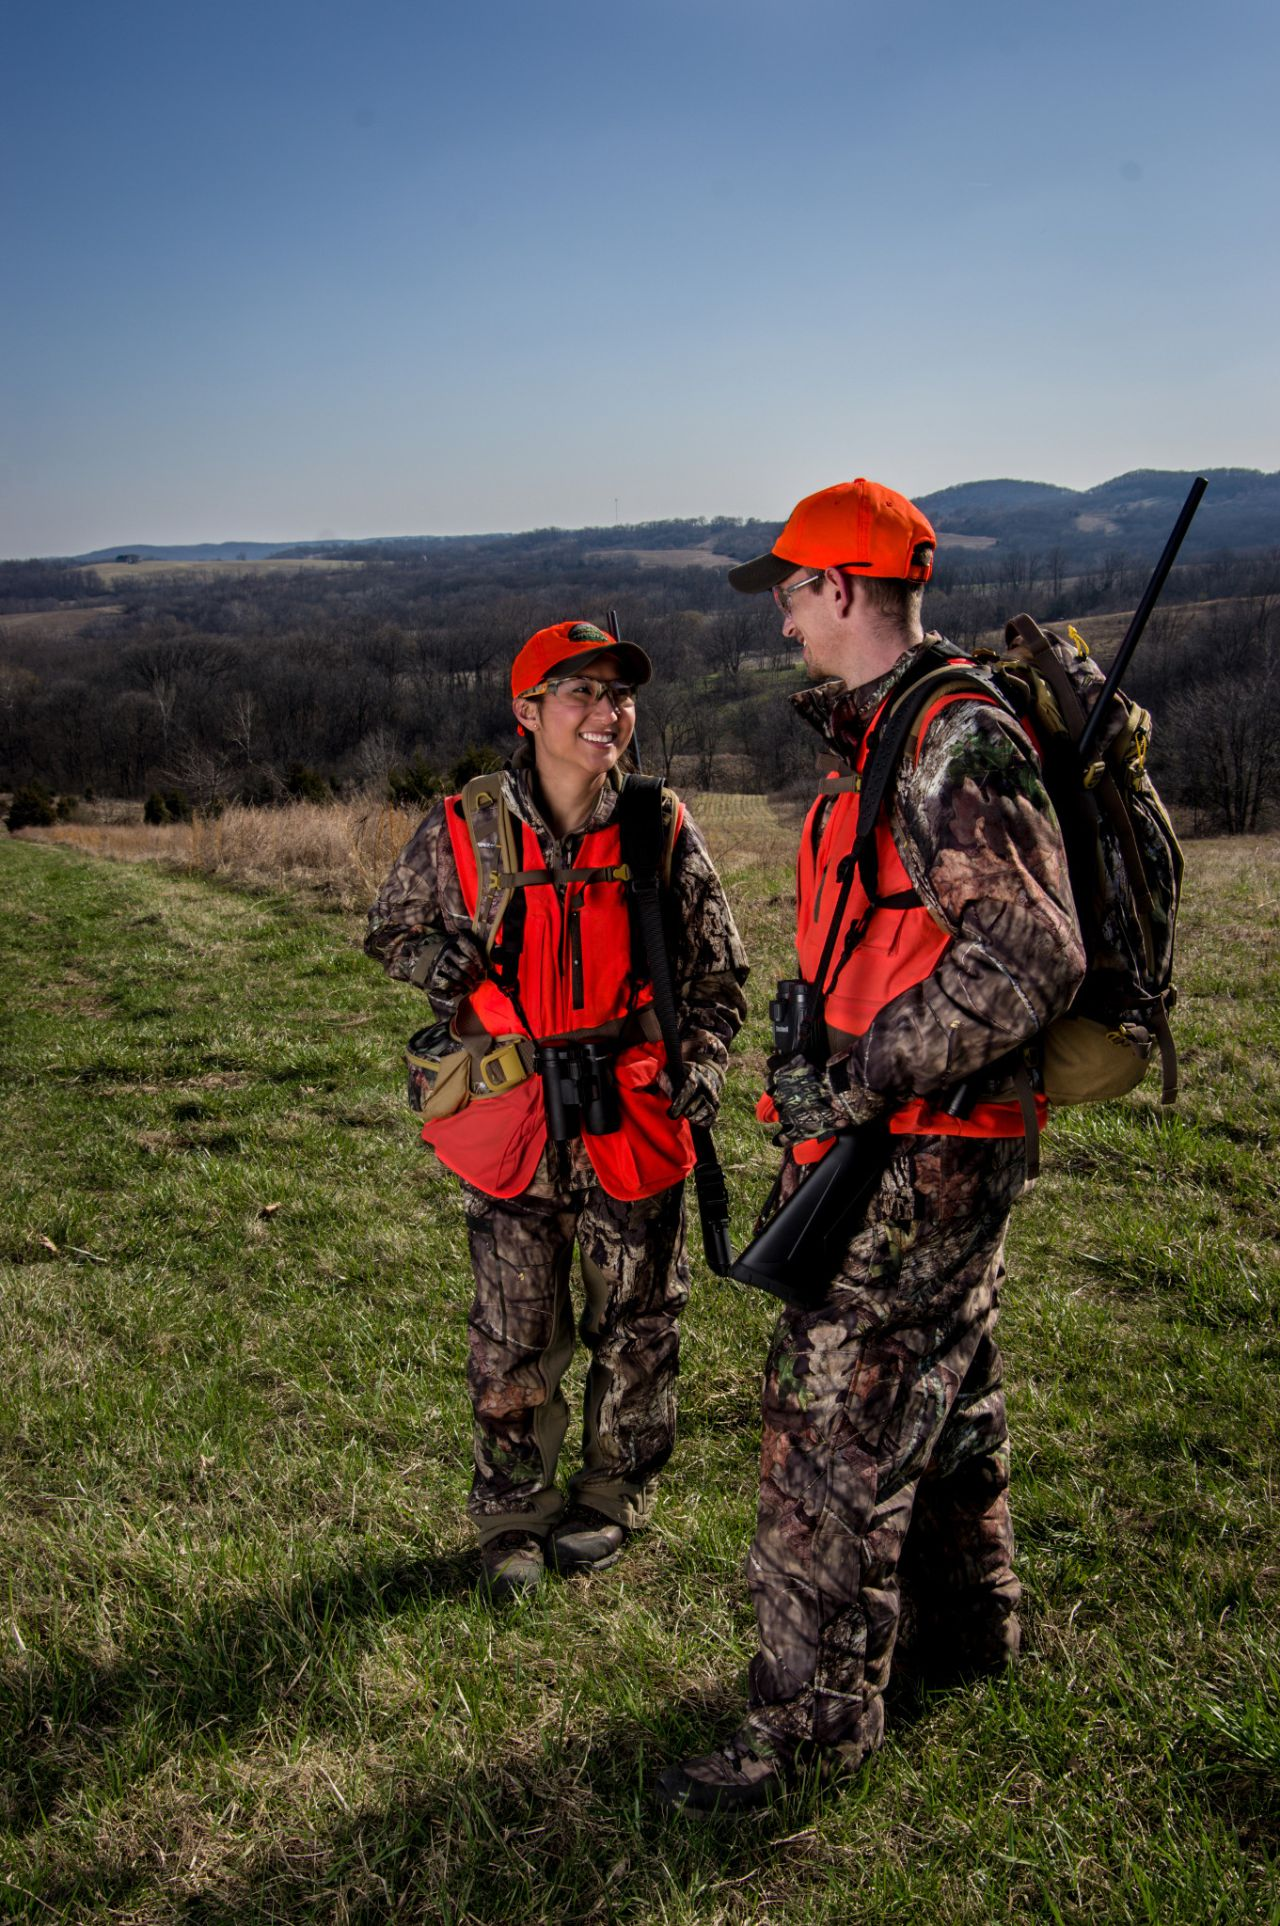 NEW Sunday Hunting LAW - Pennsylvania Celebrates More Hunting for Everyone